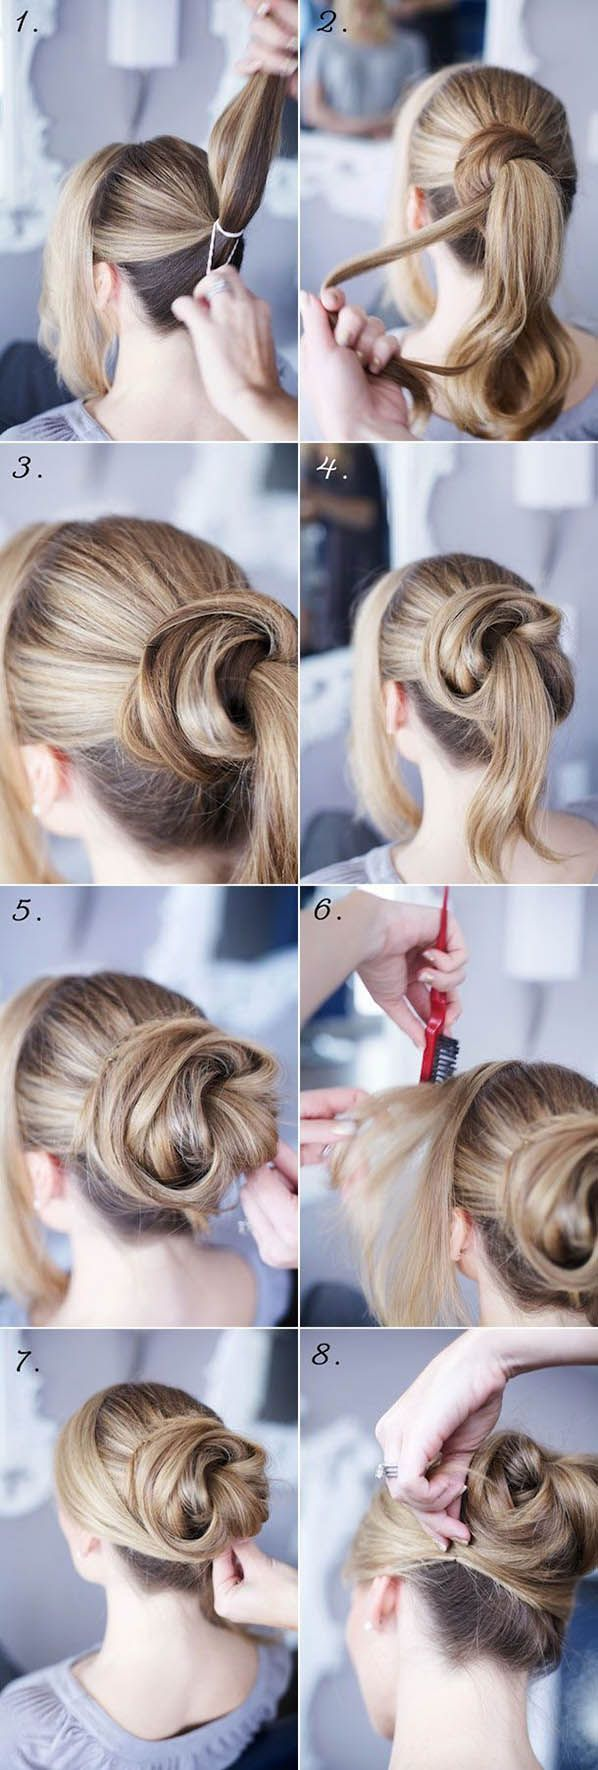 Hair Tutorials  Diy Hair  MOÑOS  Pinterest  Diy wedding hair